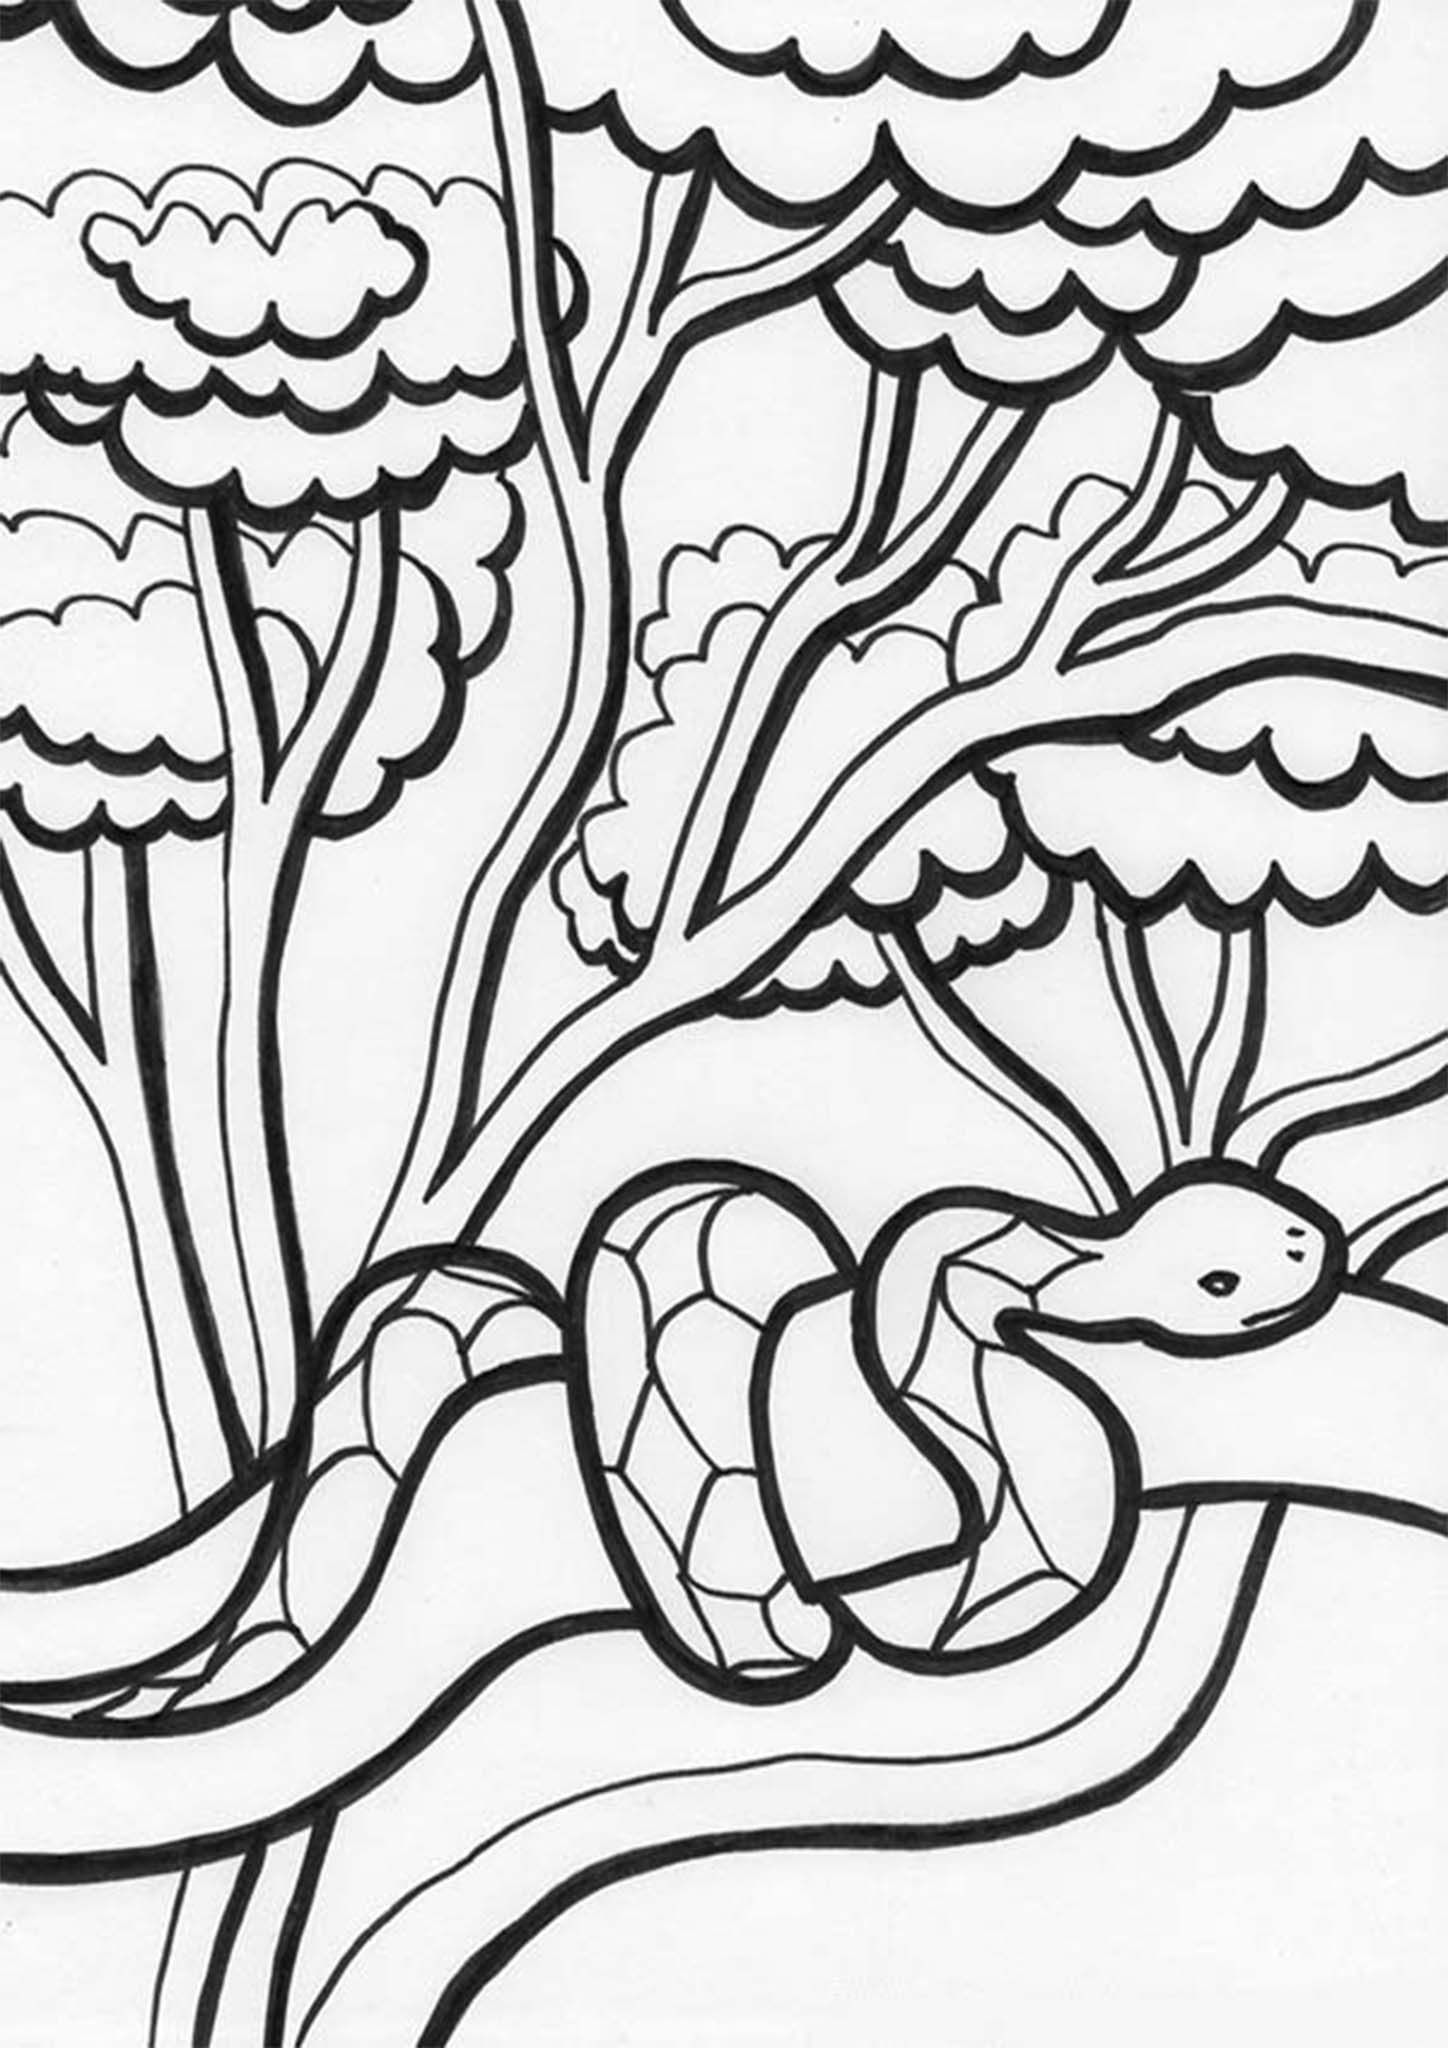 Free Easy To Print Snake Coloring Pages Snake Coloring Pages Animal Coloring Pages Tree Coloring Page